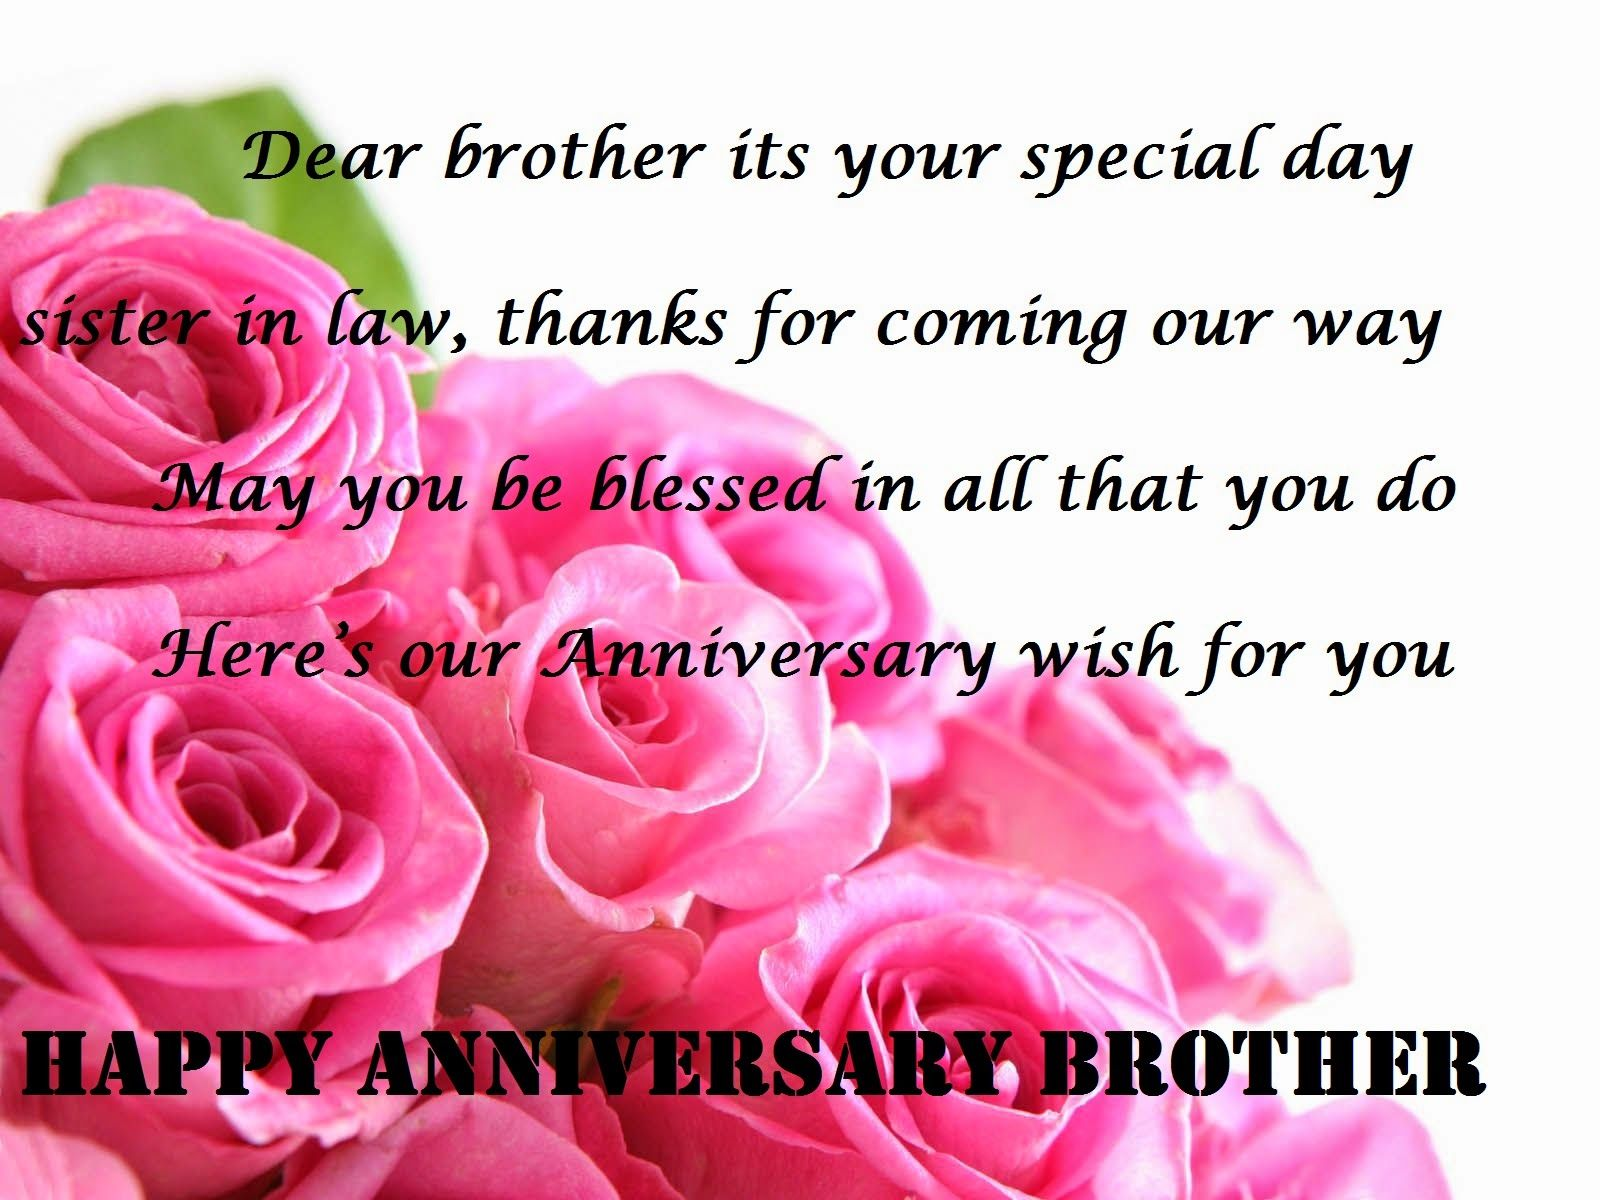 happy anniversary wishes for brother and sister in law – brother